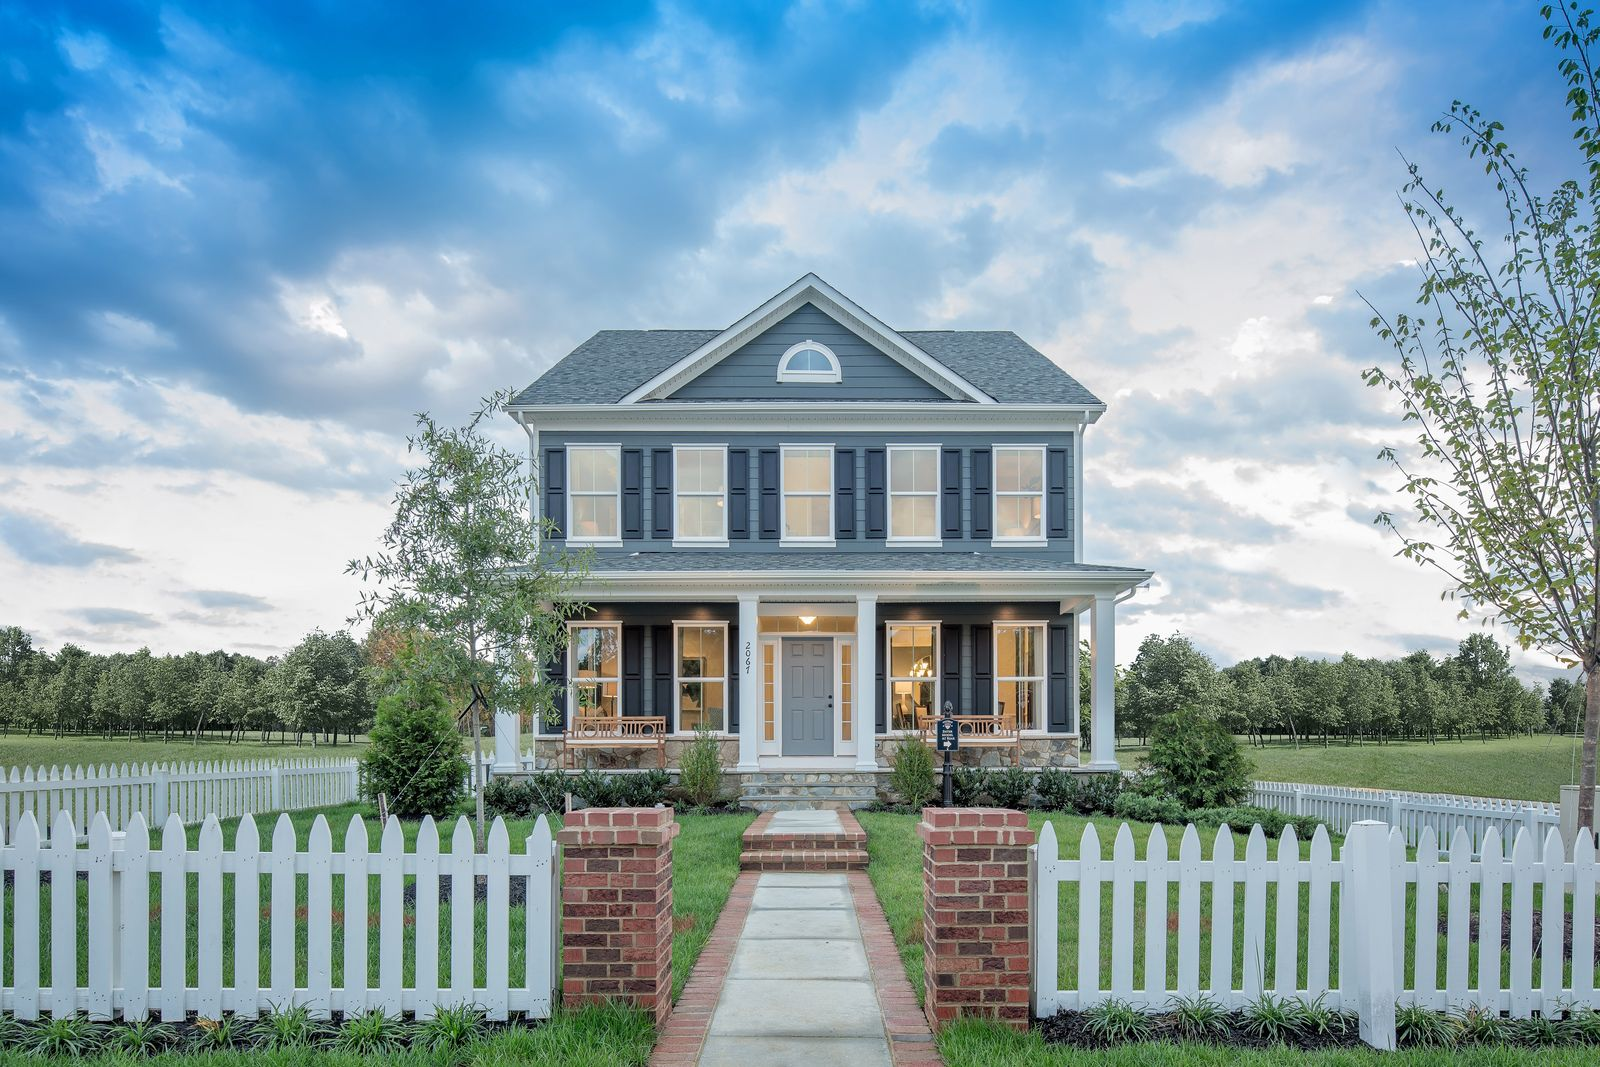 Best value & best backyards in the Ponds with our Charleston & Traditional style homes